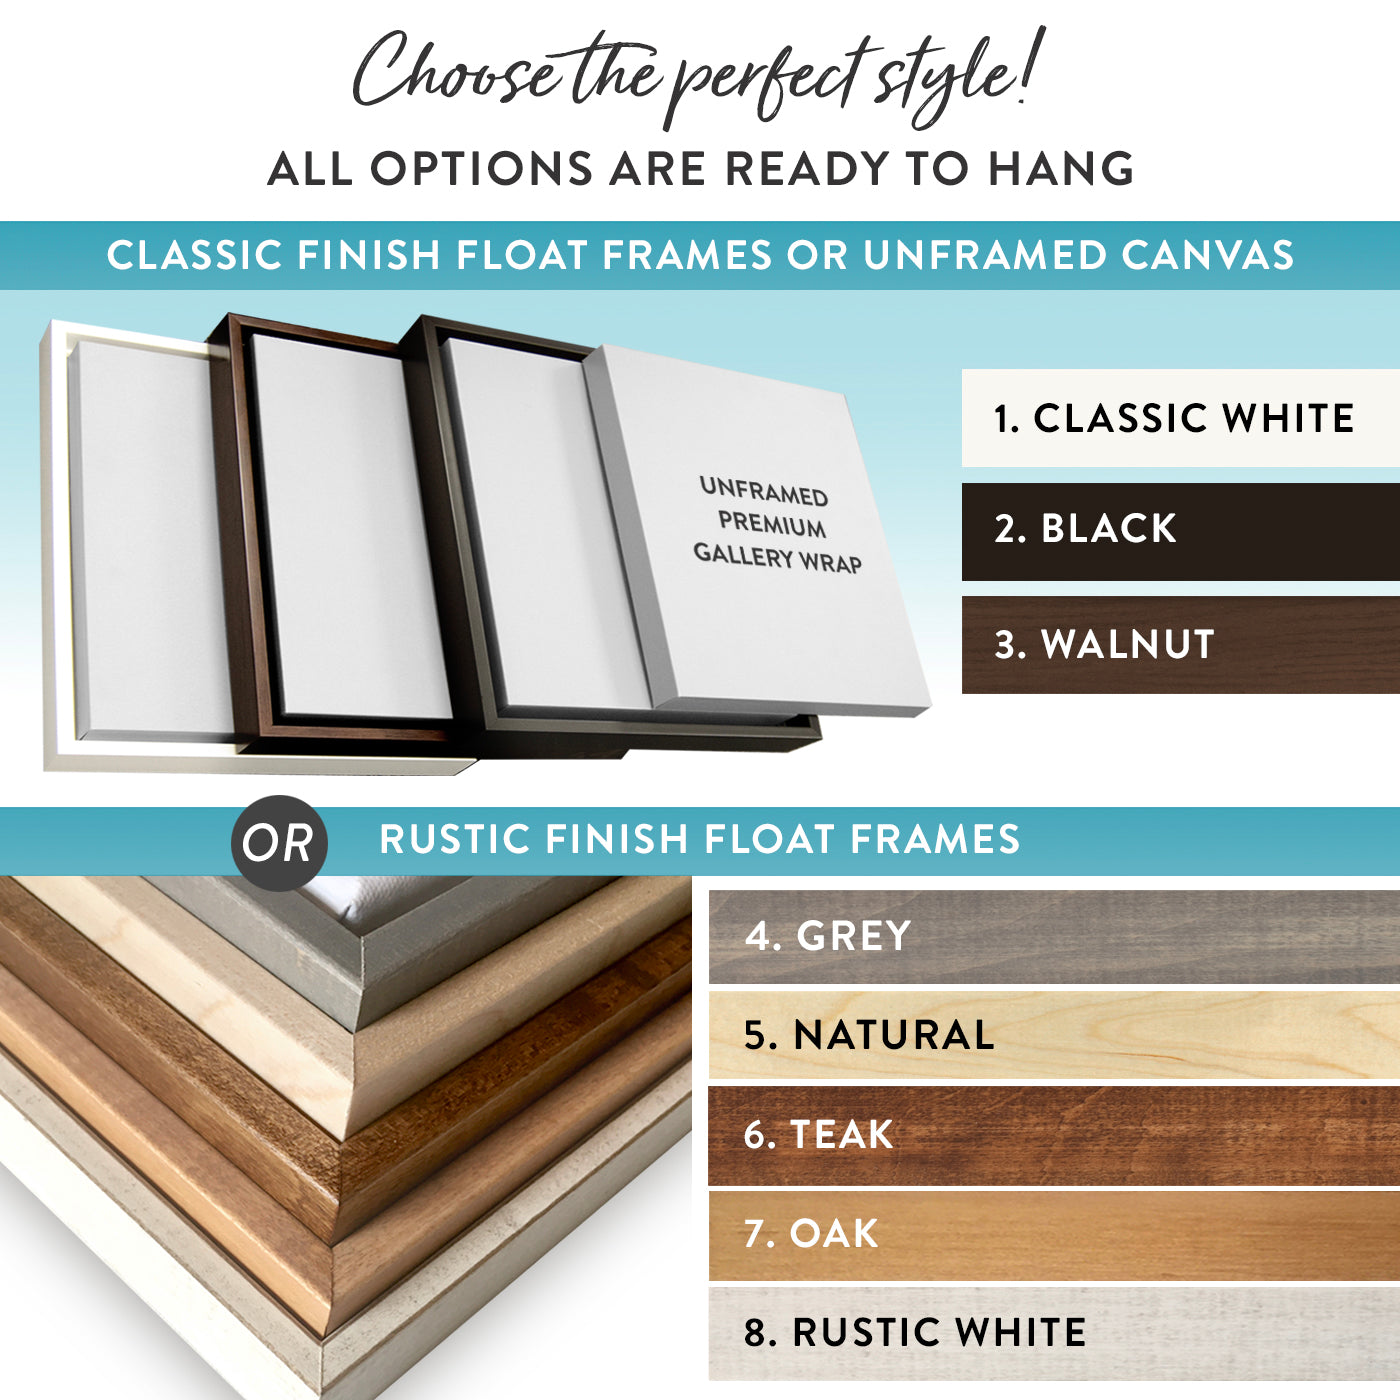 Different unframed and framed canvas wall art options at Pretty Perfect Studio